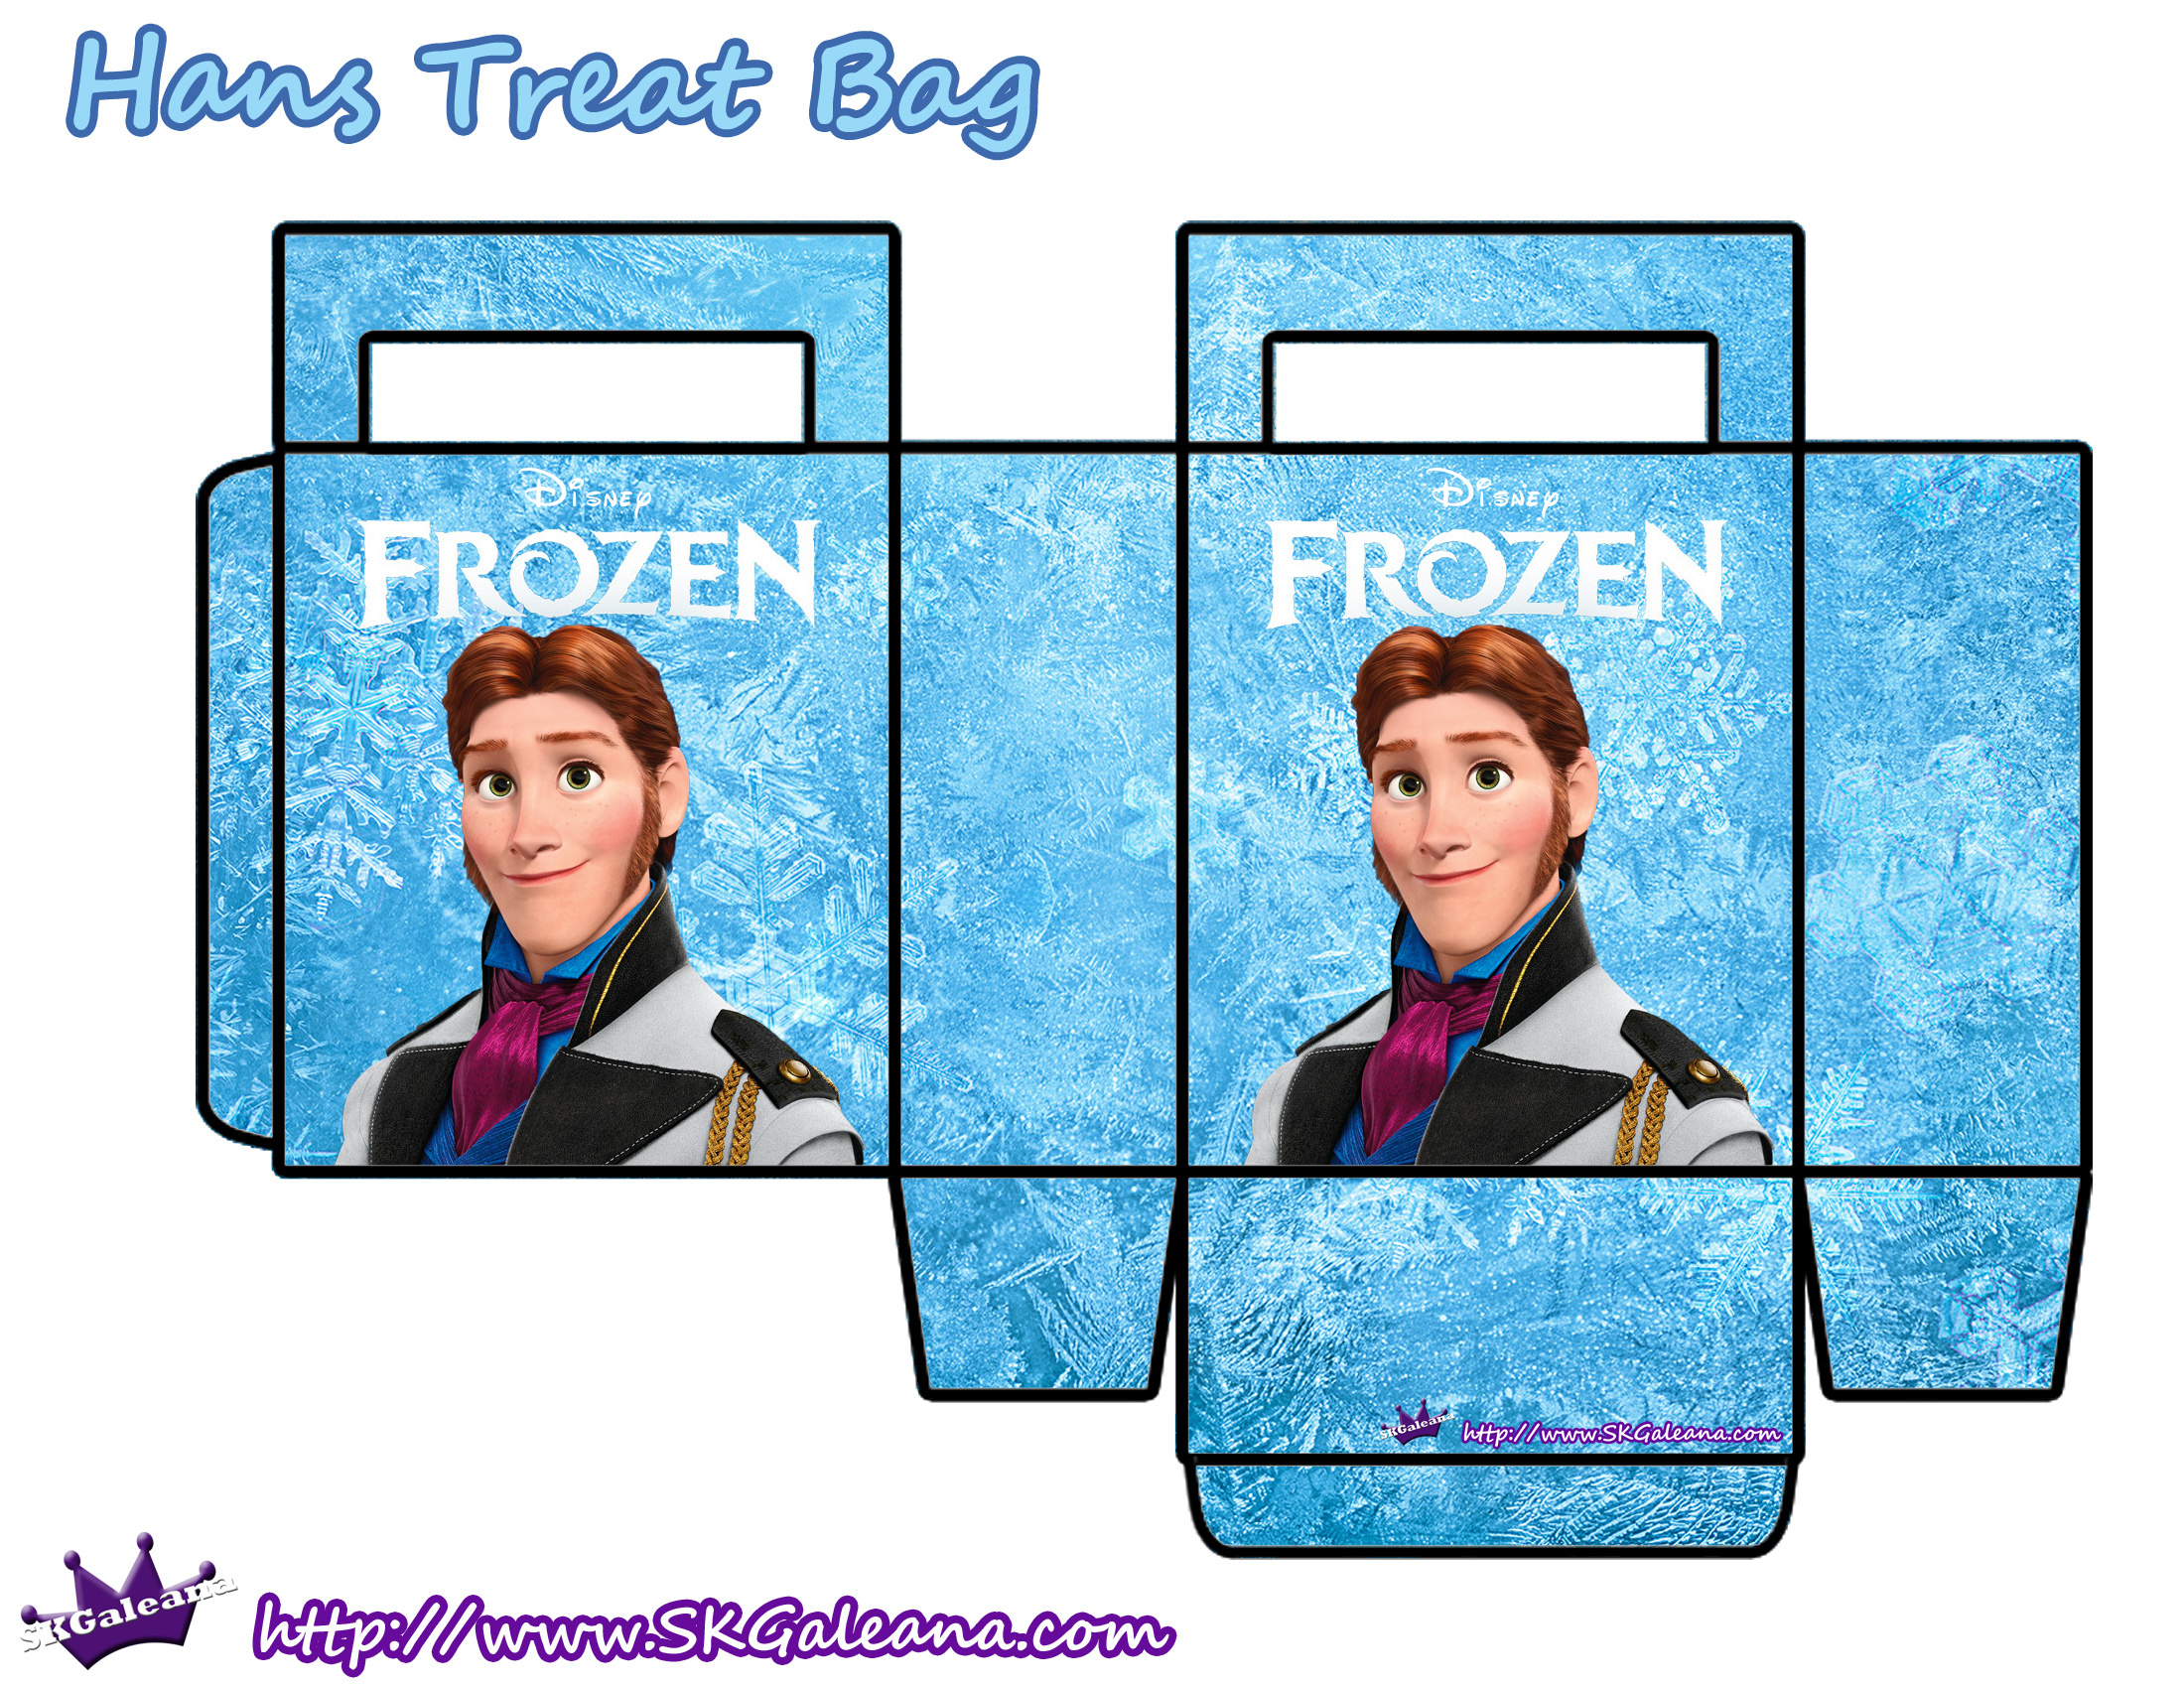 Frozen Free Printable Paper Bags In Light Blue